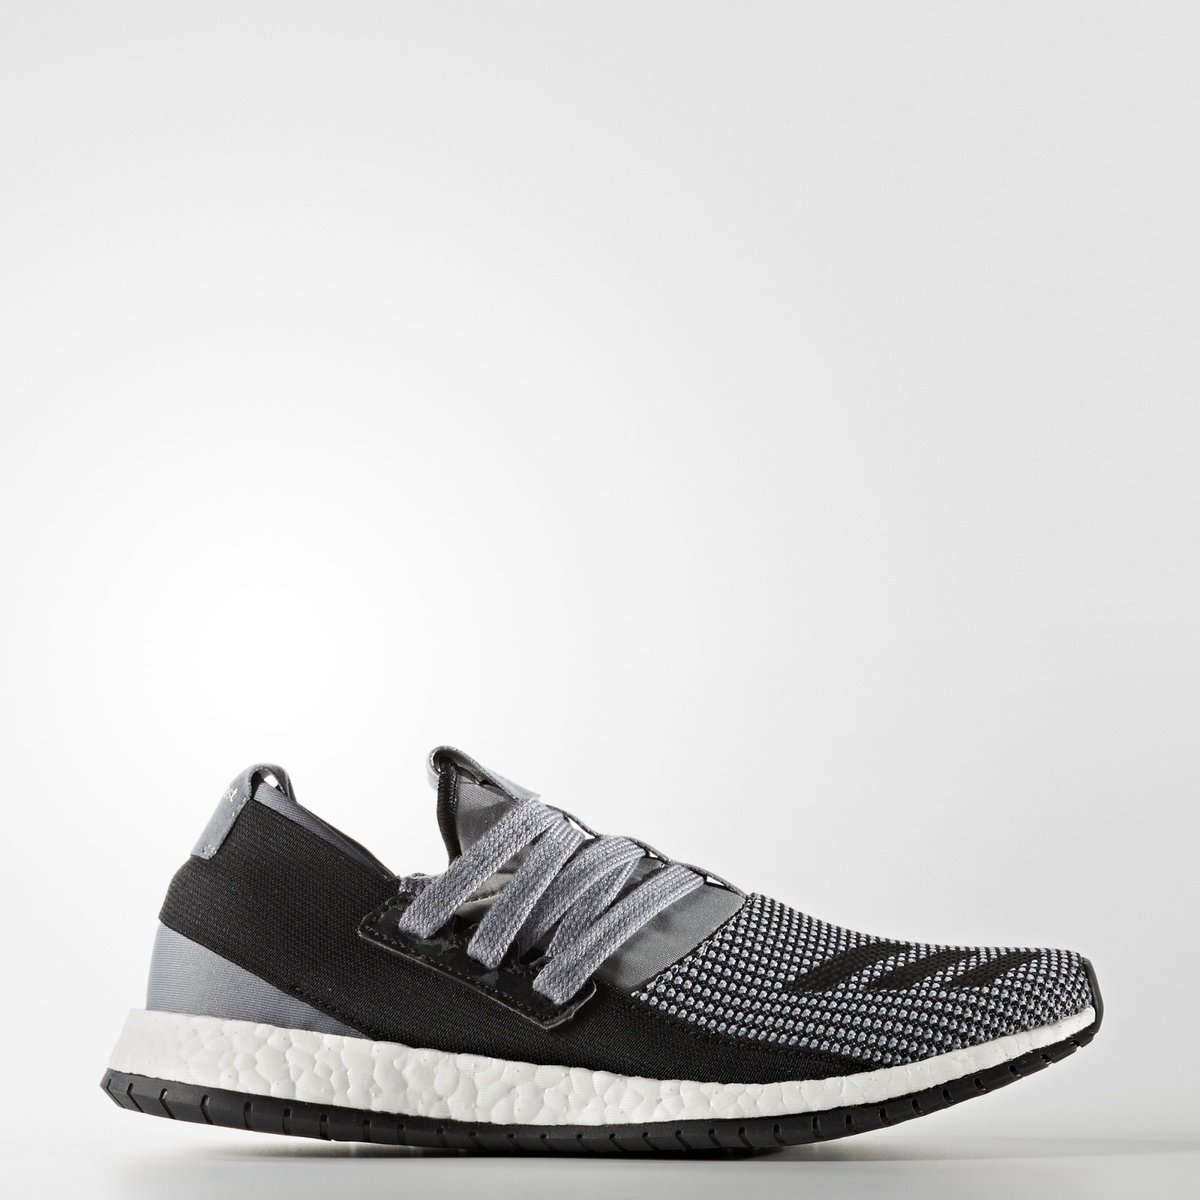 Cancelo #adidas pure boost r no Twitter